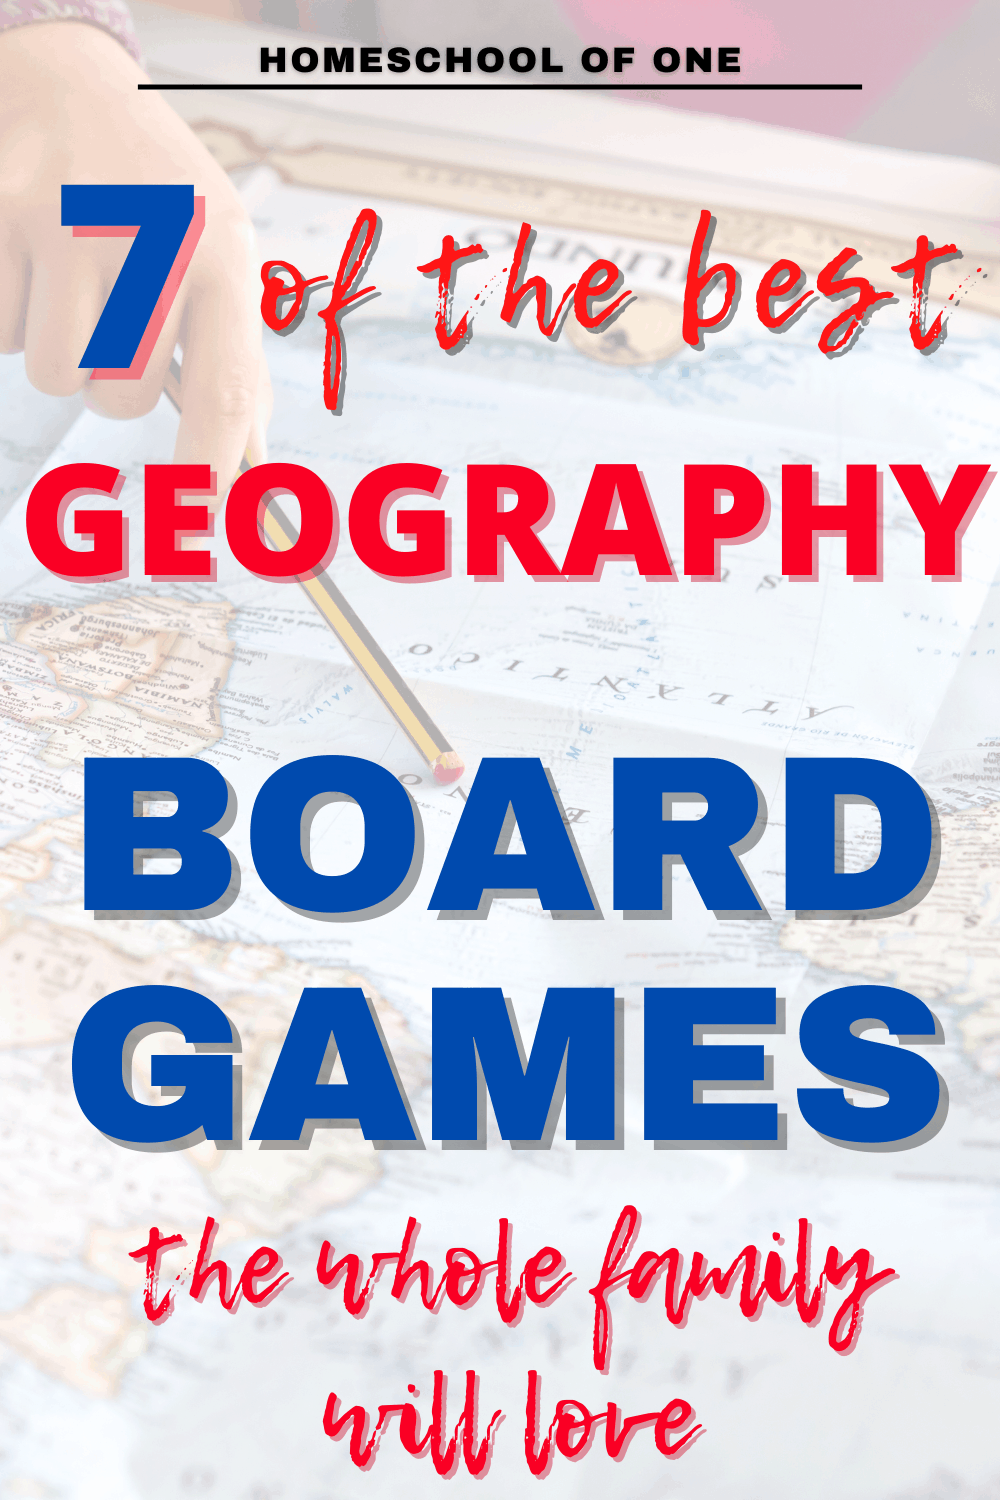 7 of the best geography board games you can play together as a family. Perfect for homeschooling #geography #boardgames